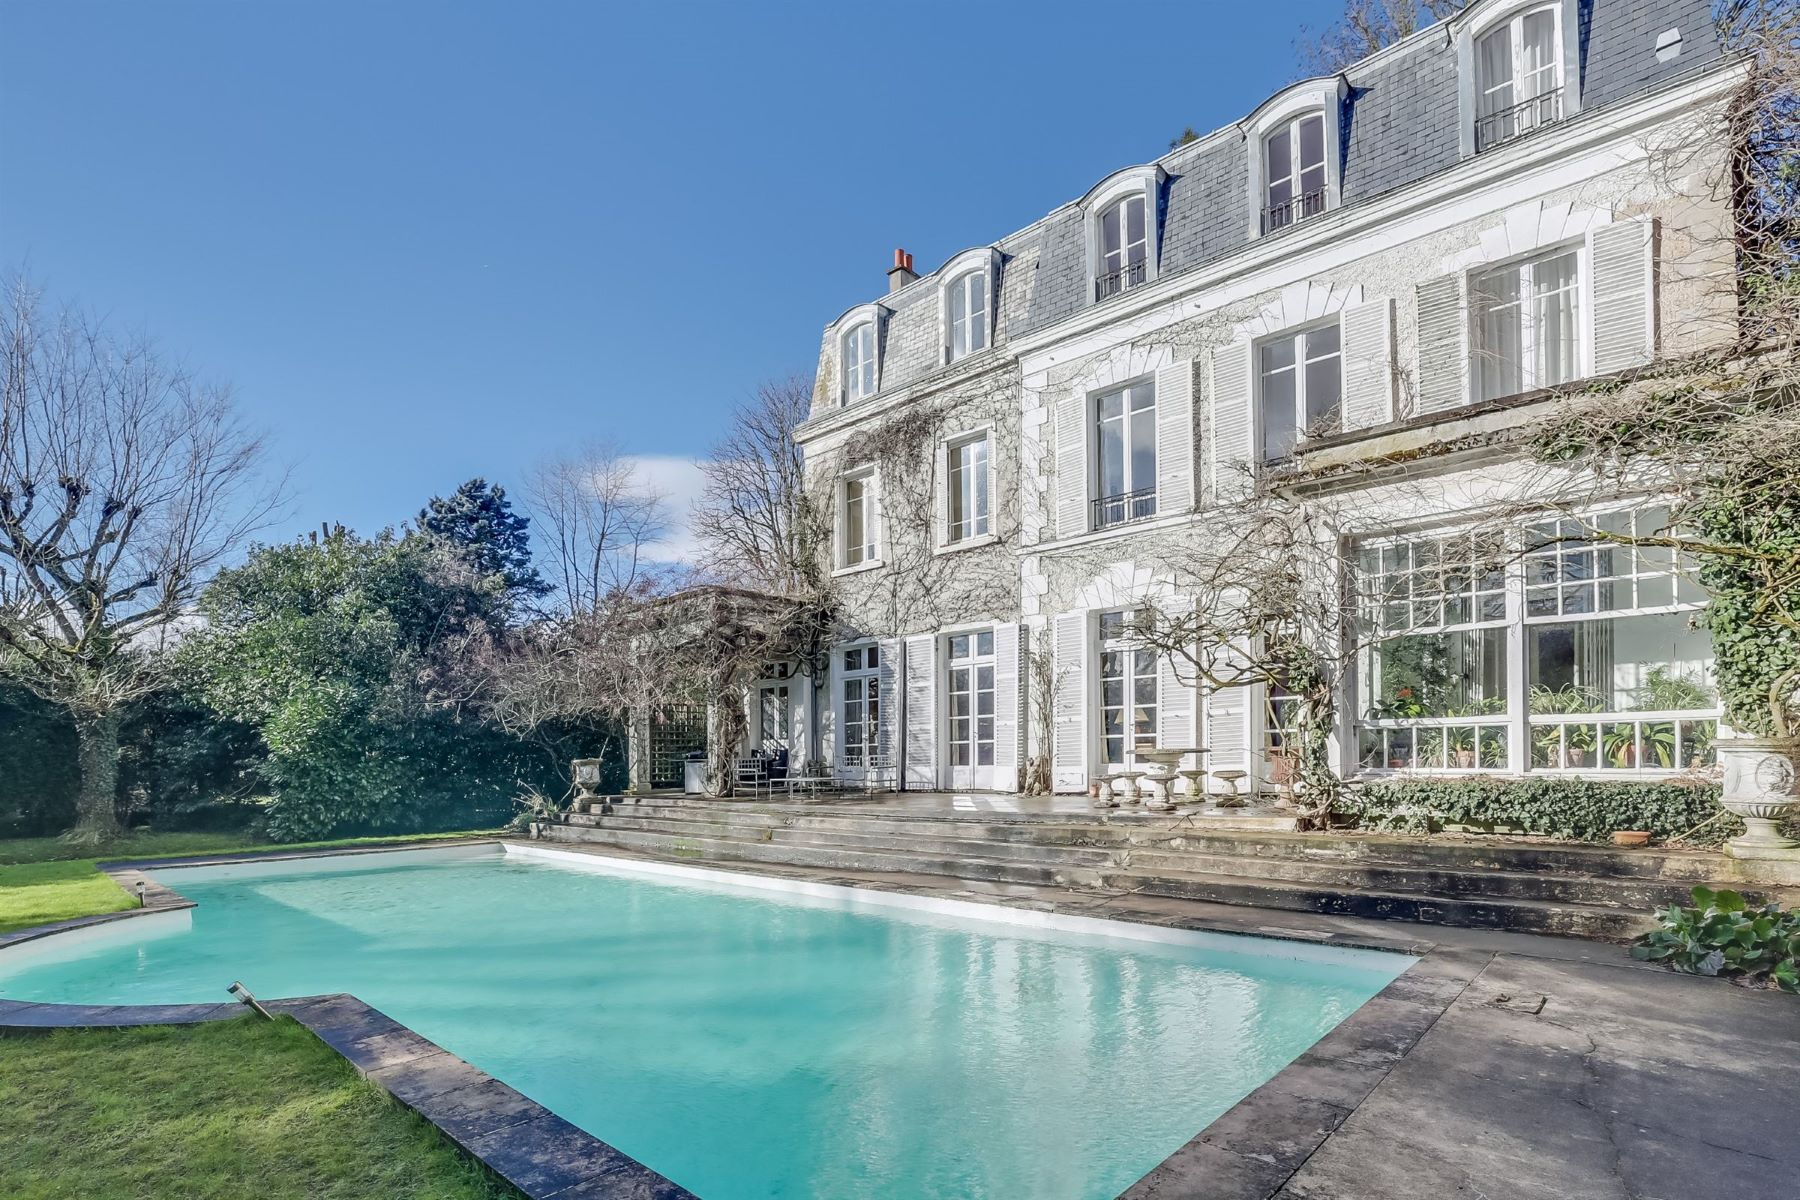 Single Family Home for Sale at Prestigious dwelling for sale in Vaucresson Division Thery Vaucresson, Ile-De-France, 92420 France